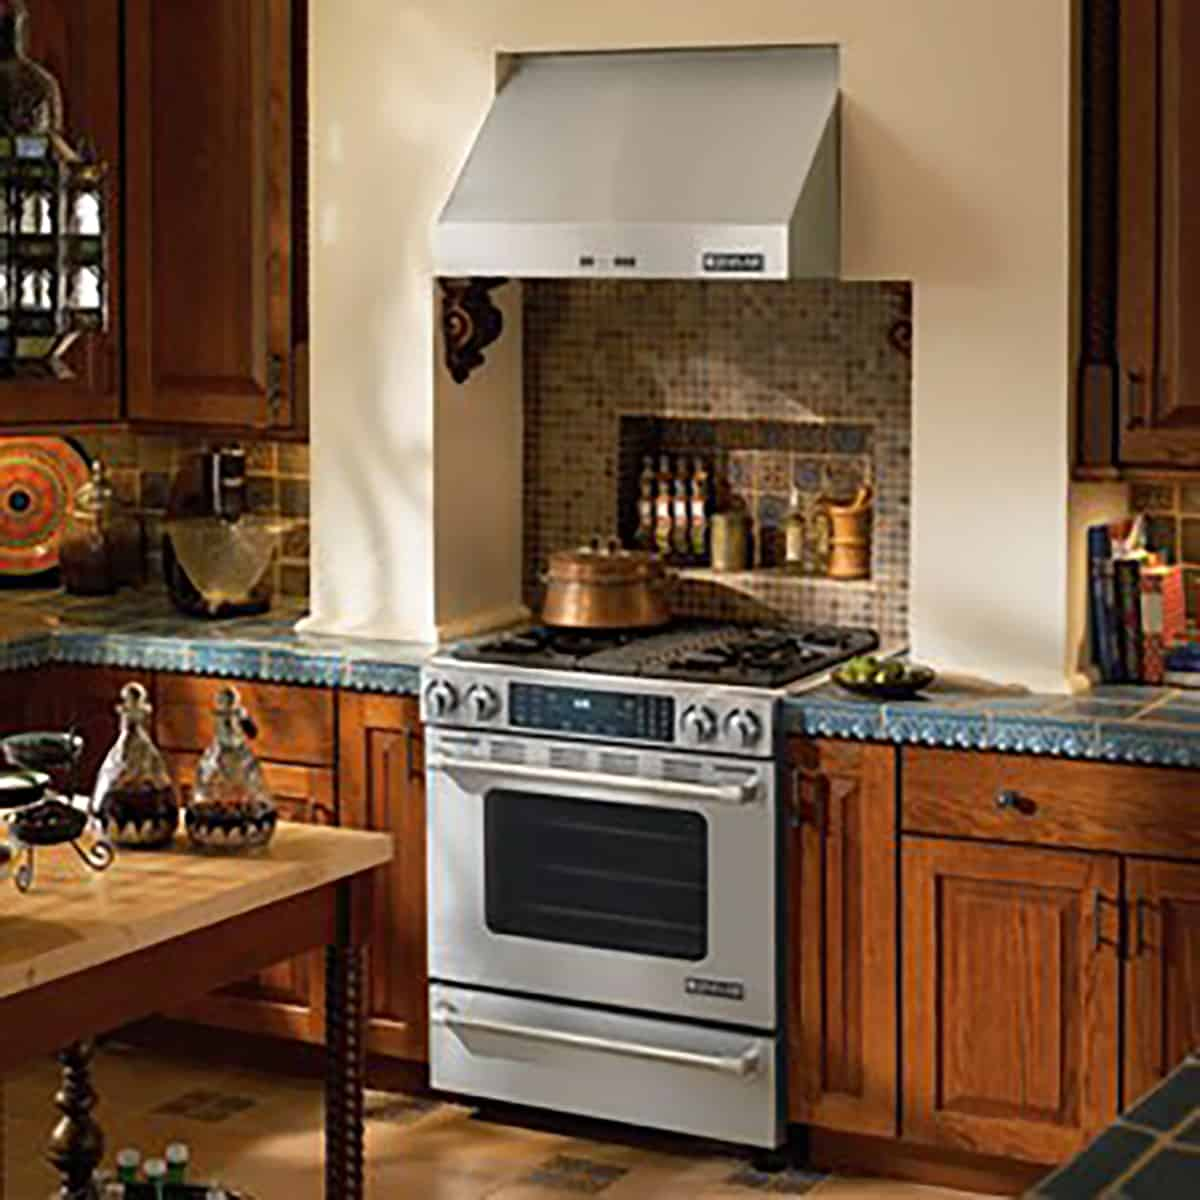 Charming Jennair Slidein Installed JGS8860BDP KitchenAid ...